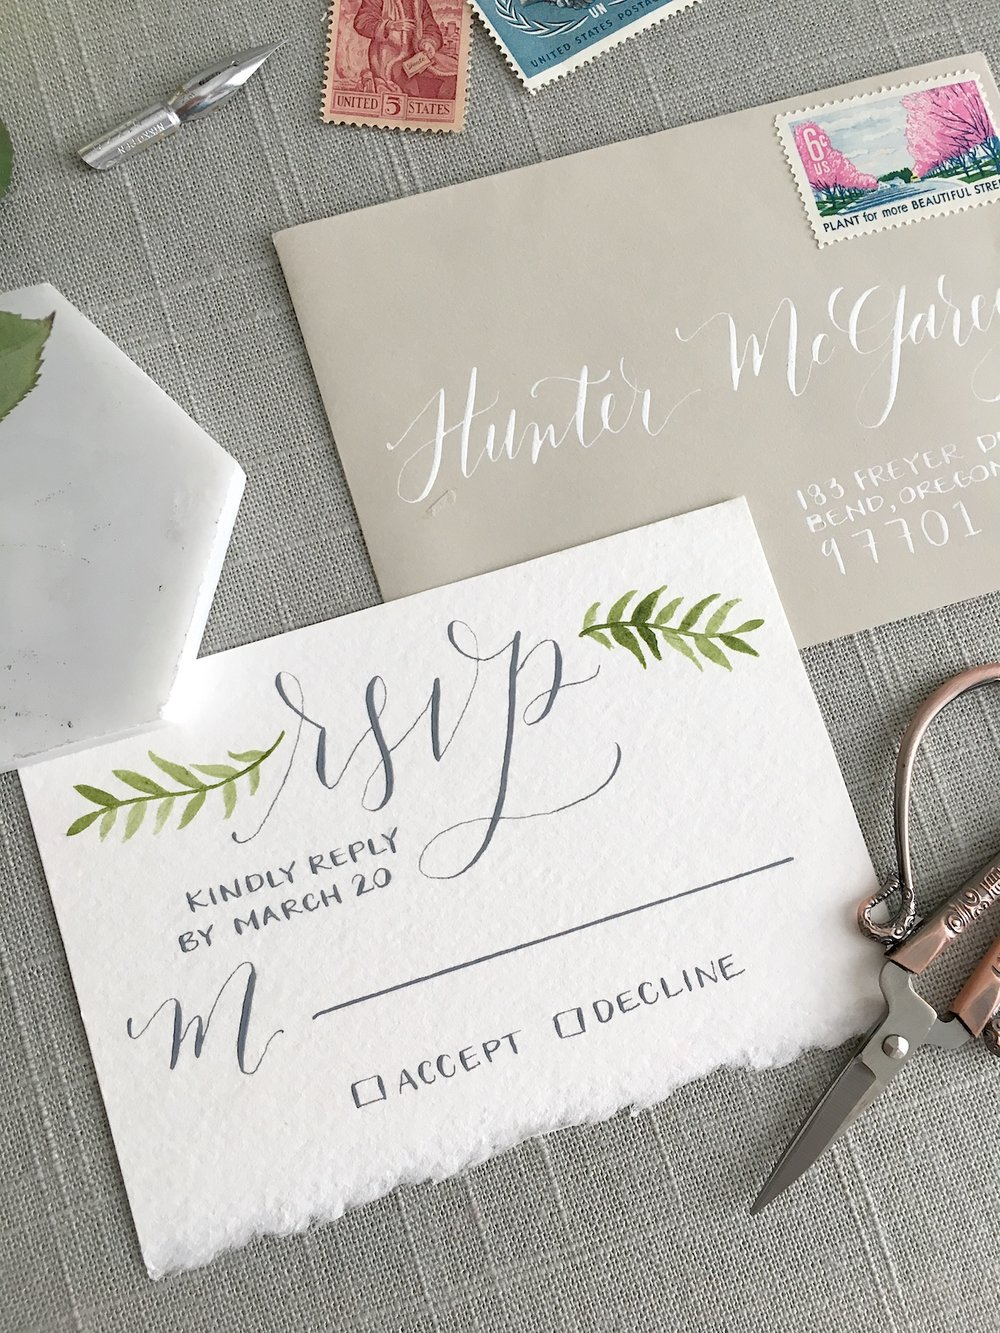 "This RSVP card was another one that was completed for a styled shoot, and for that reason it is definitely simplified! I still included the ""Kindly Reply by March 20"" because having something like that is essential for every RSVP card."